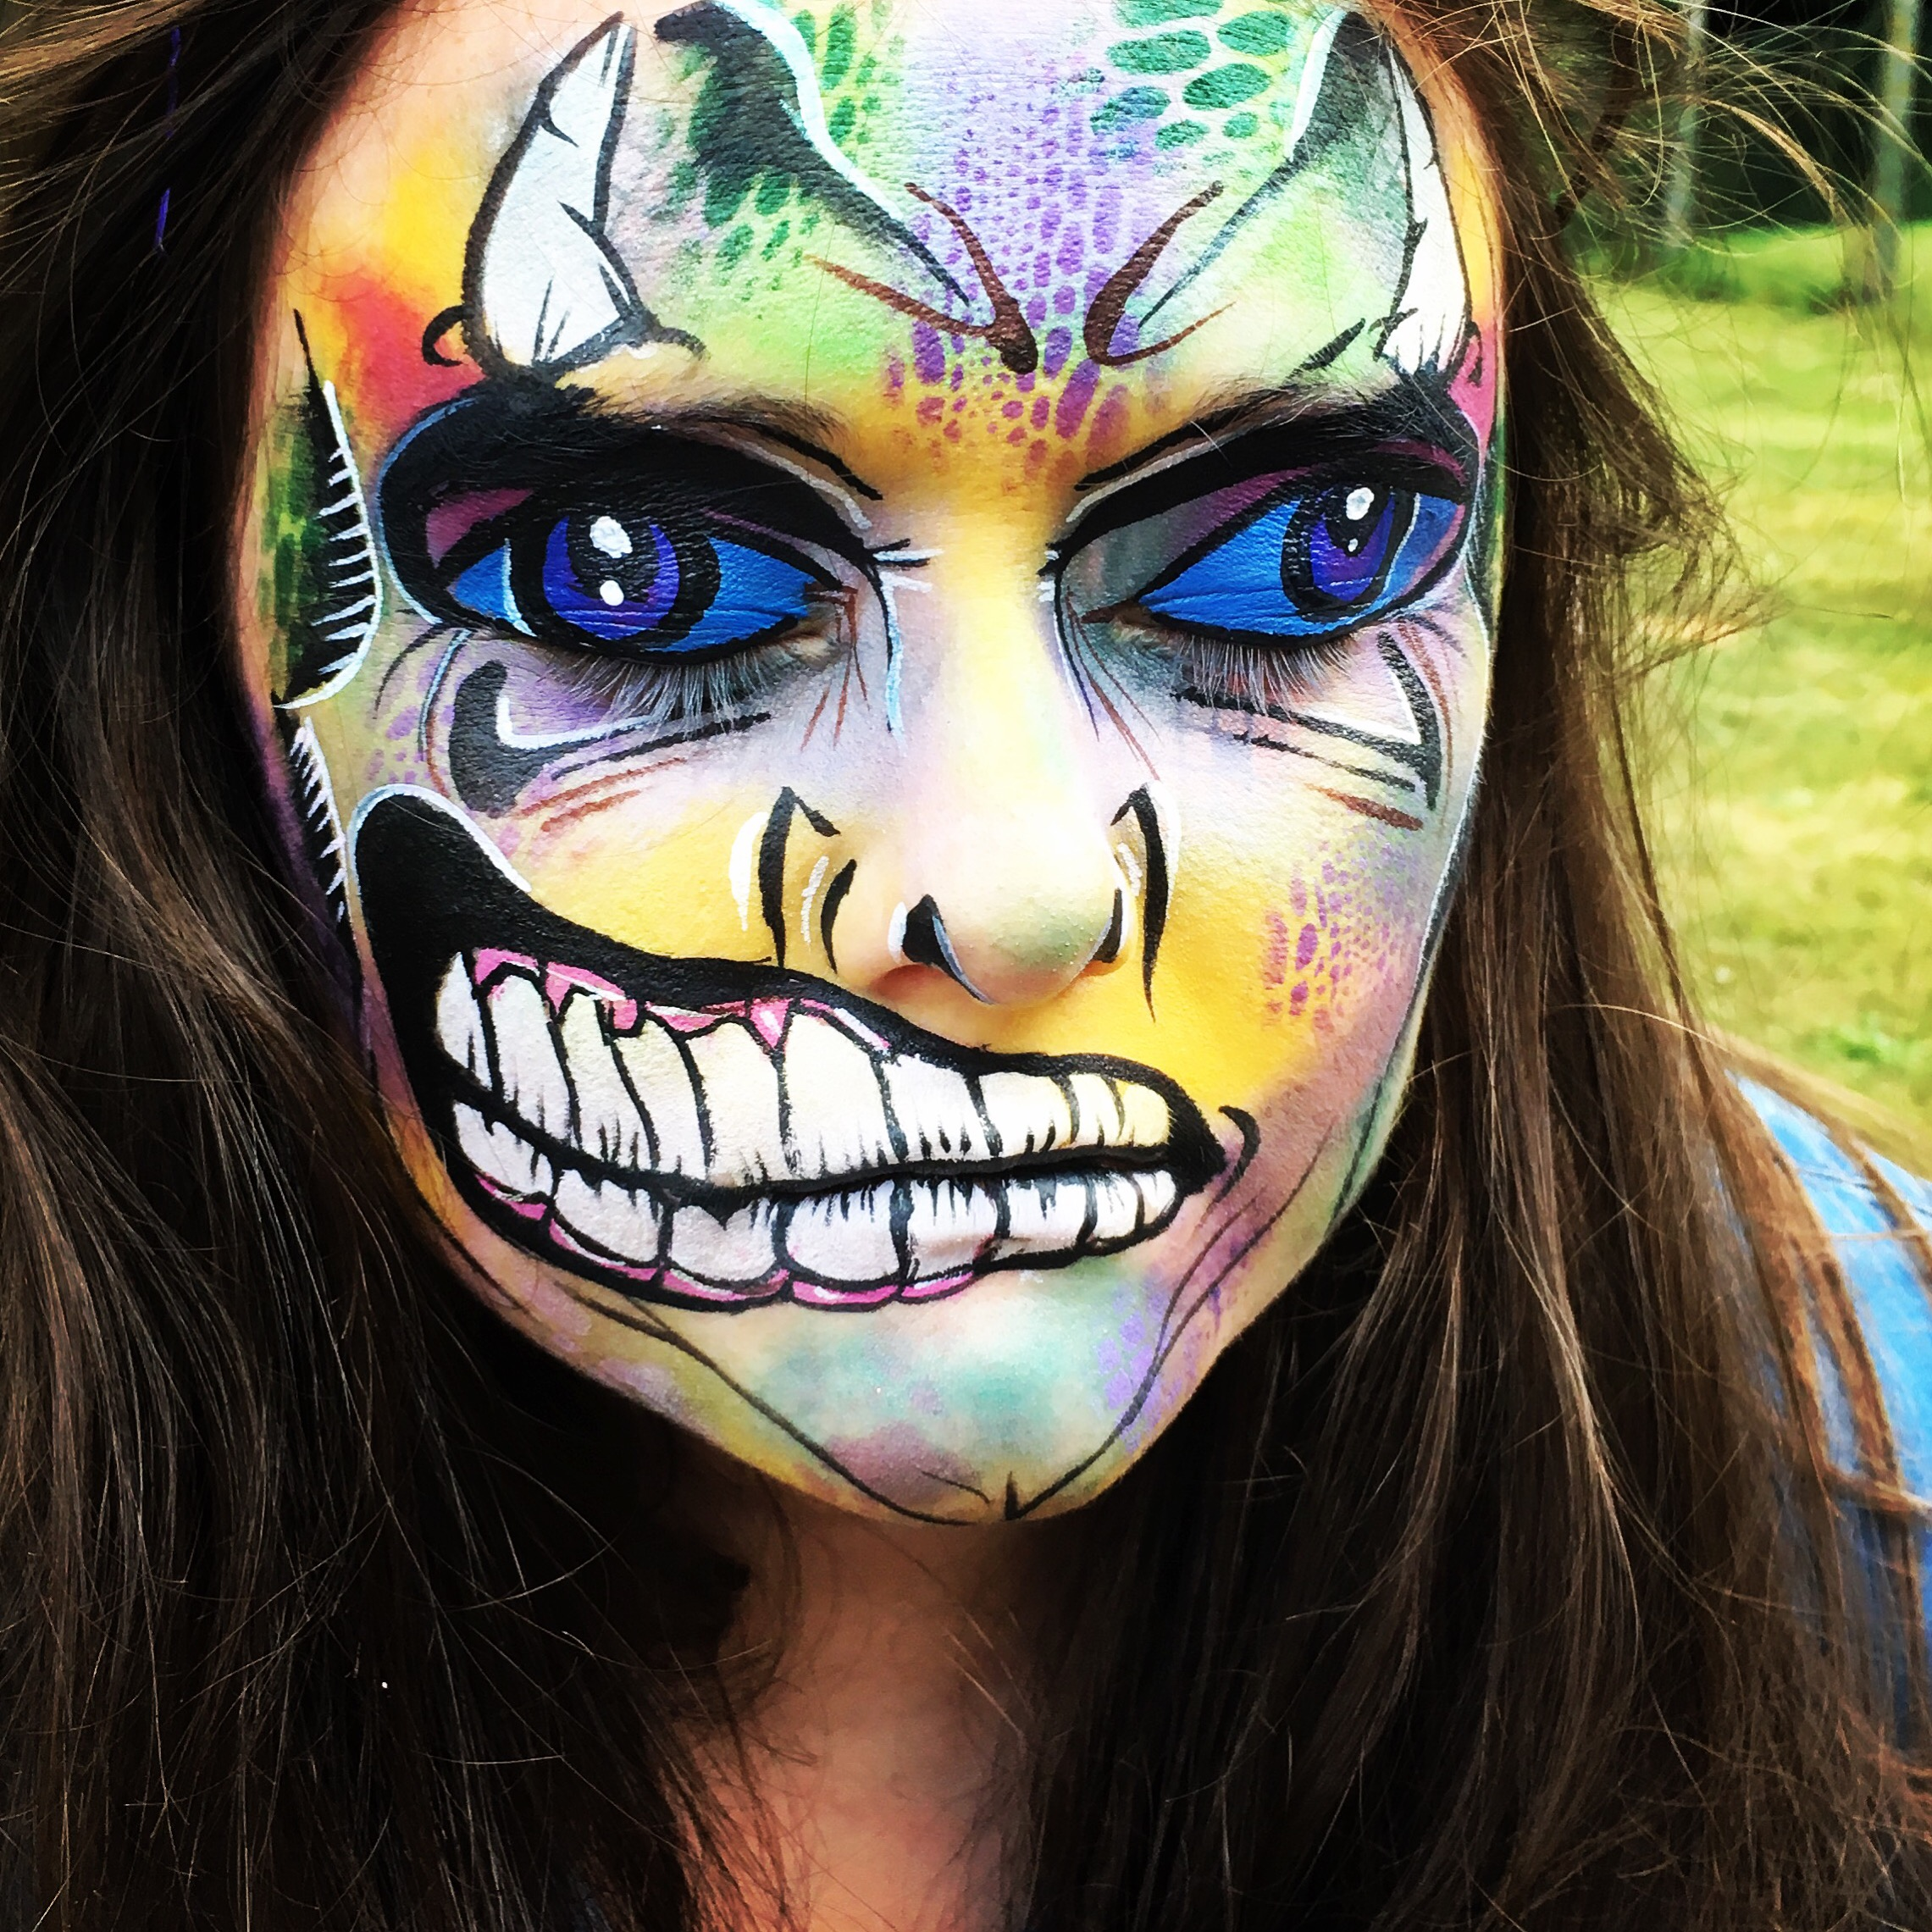 Monster/Zombie face paint